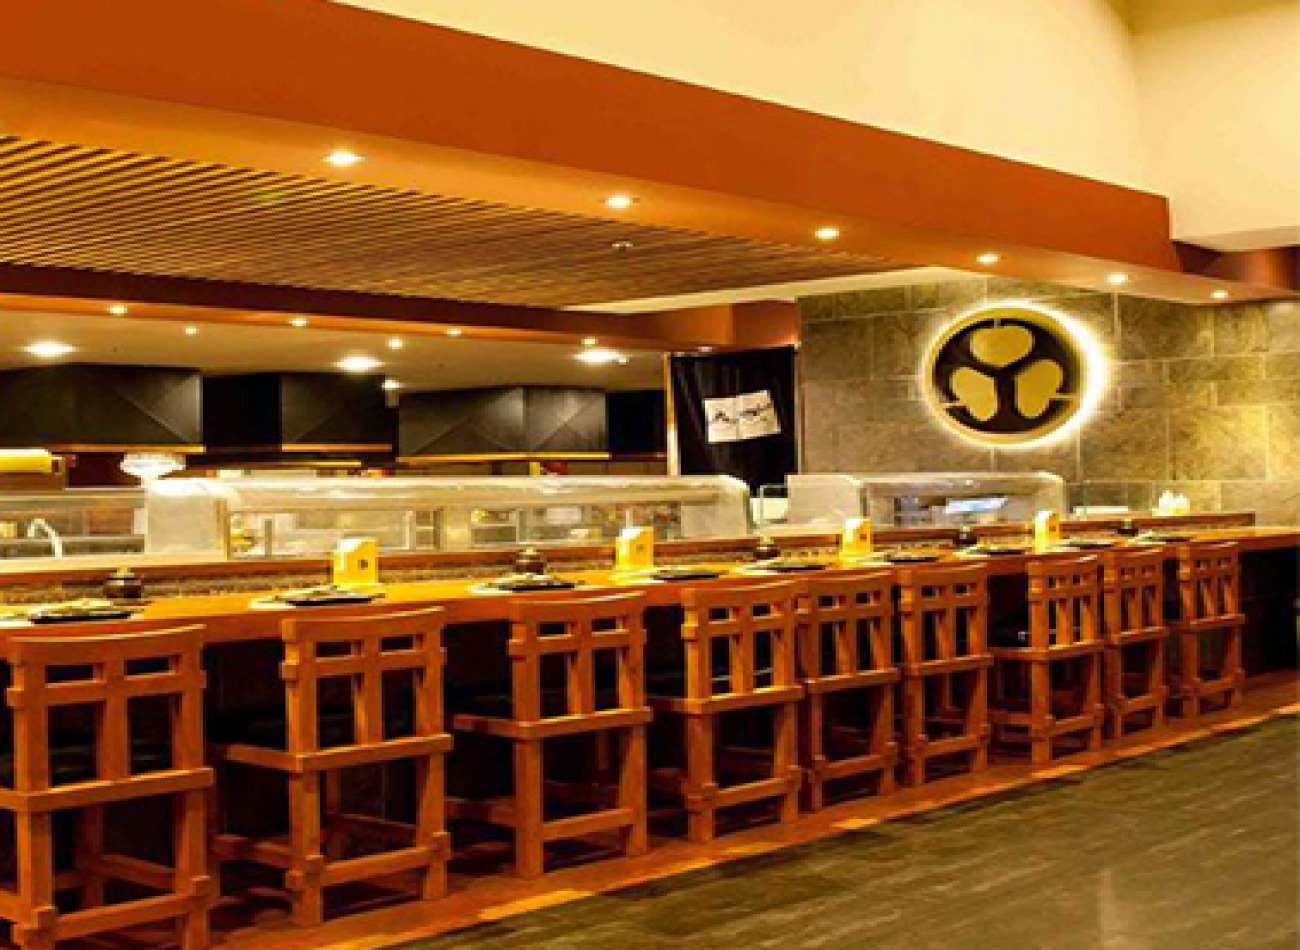 EDO SUSHI BAR - EL TRIGAL SURCO Restaurant - and Peruvian Food AUTHOR - SANTIAGO DE SURCO - MESA 24/7 Guide | LIMA - Peru